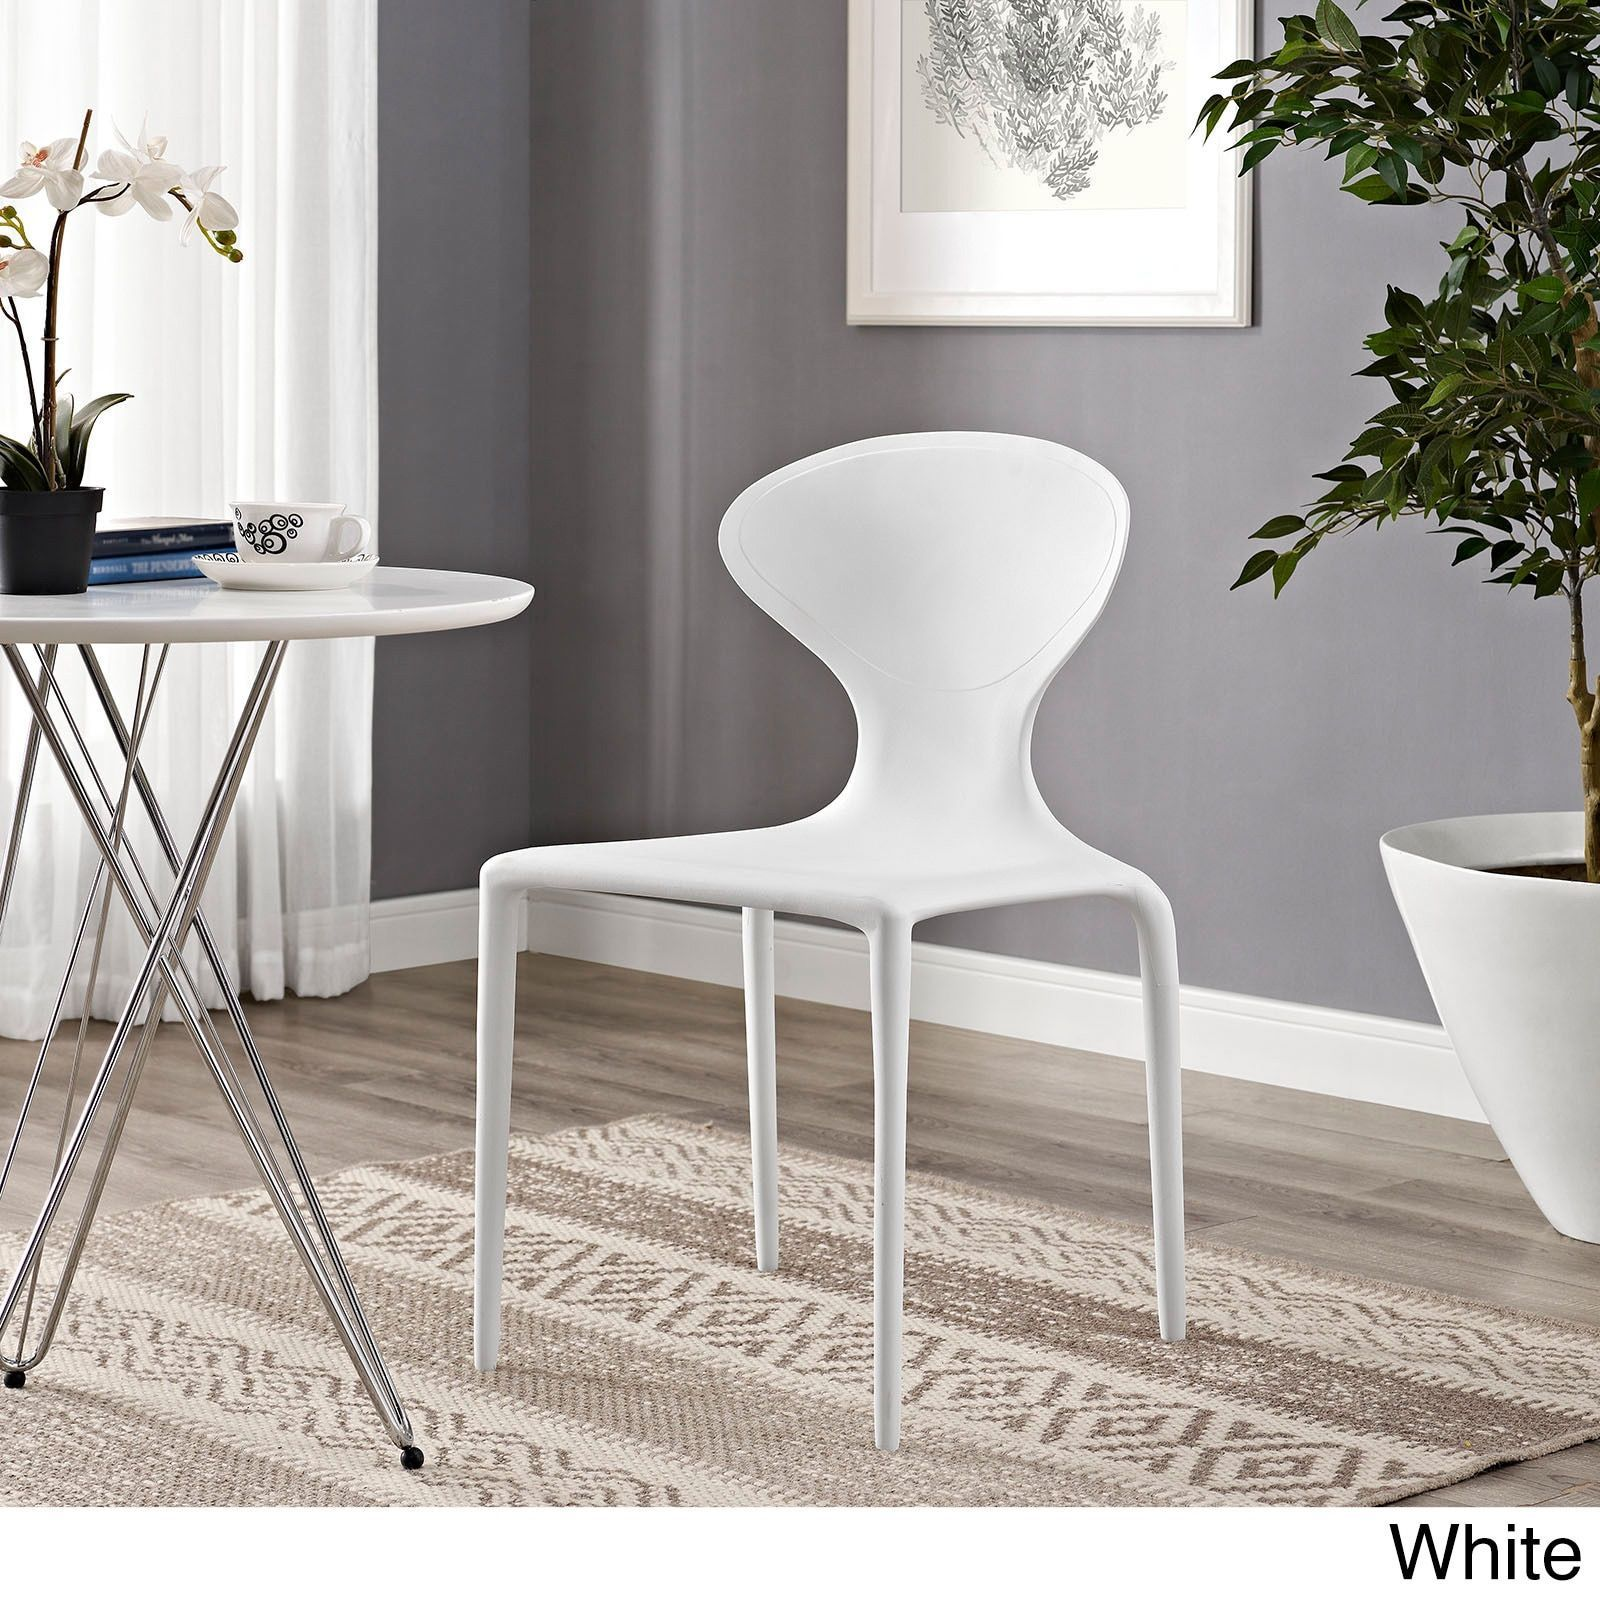 Miraculous Modway Draw Dining Chair White Plastic Products Uwap Interior Chair Design Uwaporg